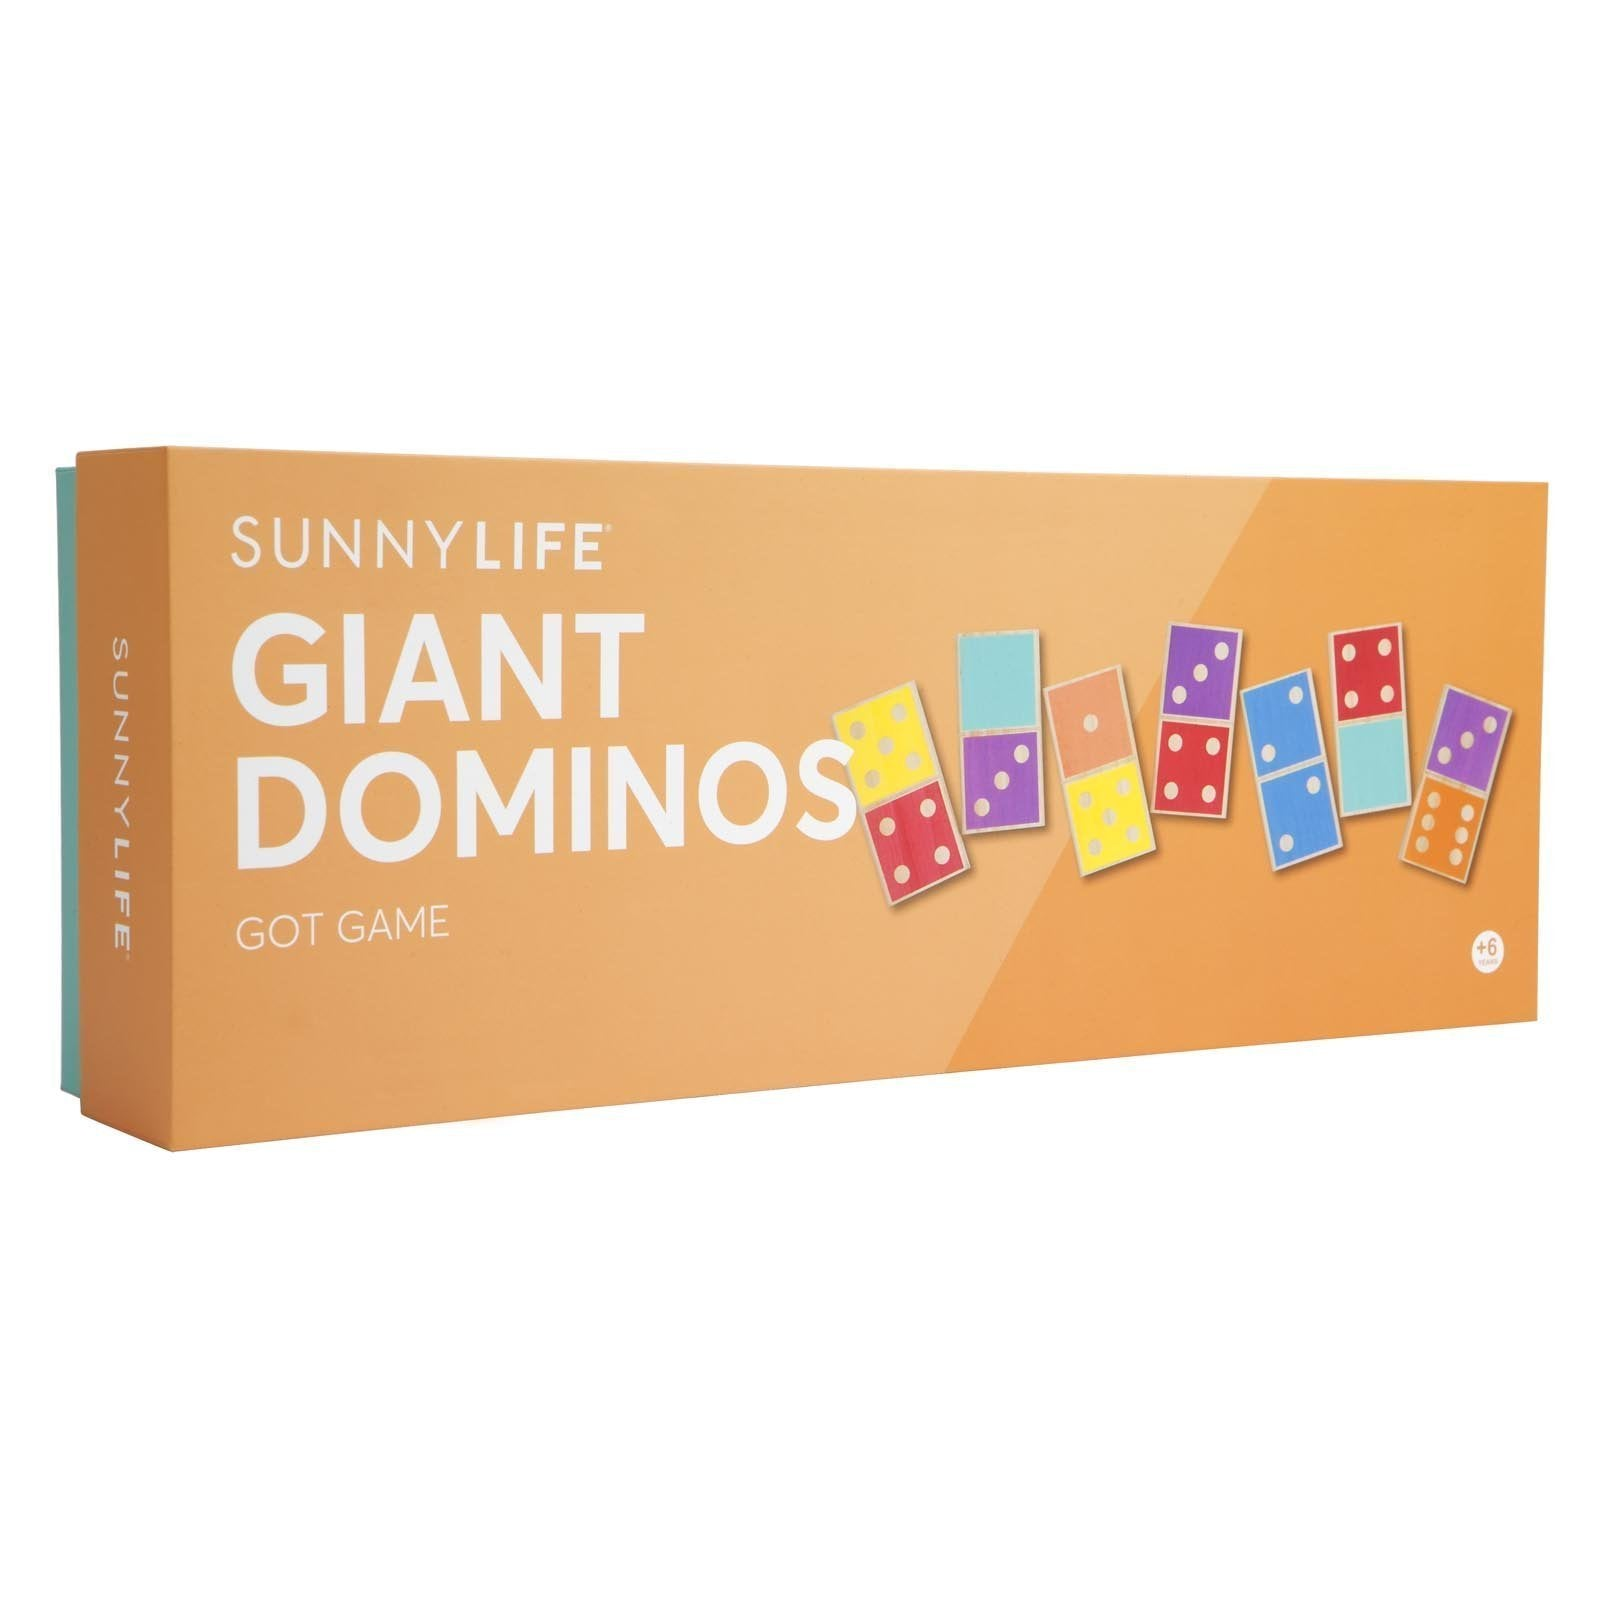 Outliving Sunnylife Giant Dominos